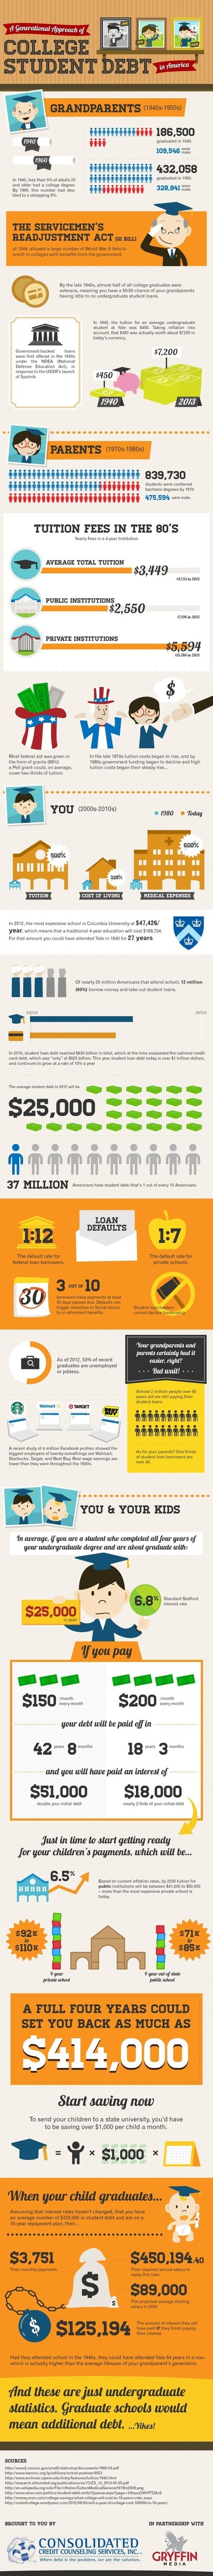 Student Loan Infograph - YNAB | Infographs | Scoop.it